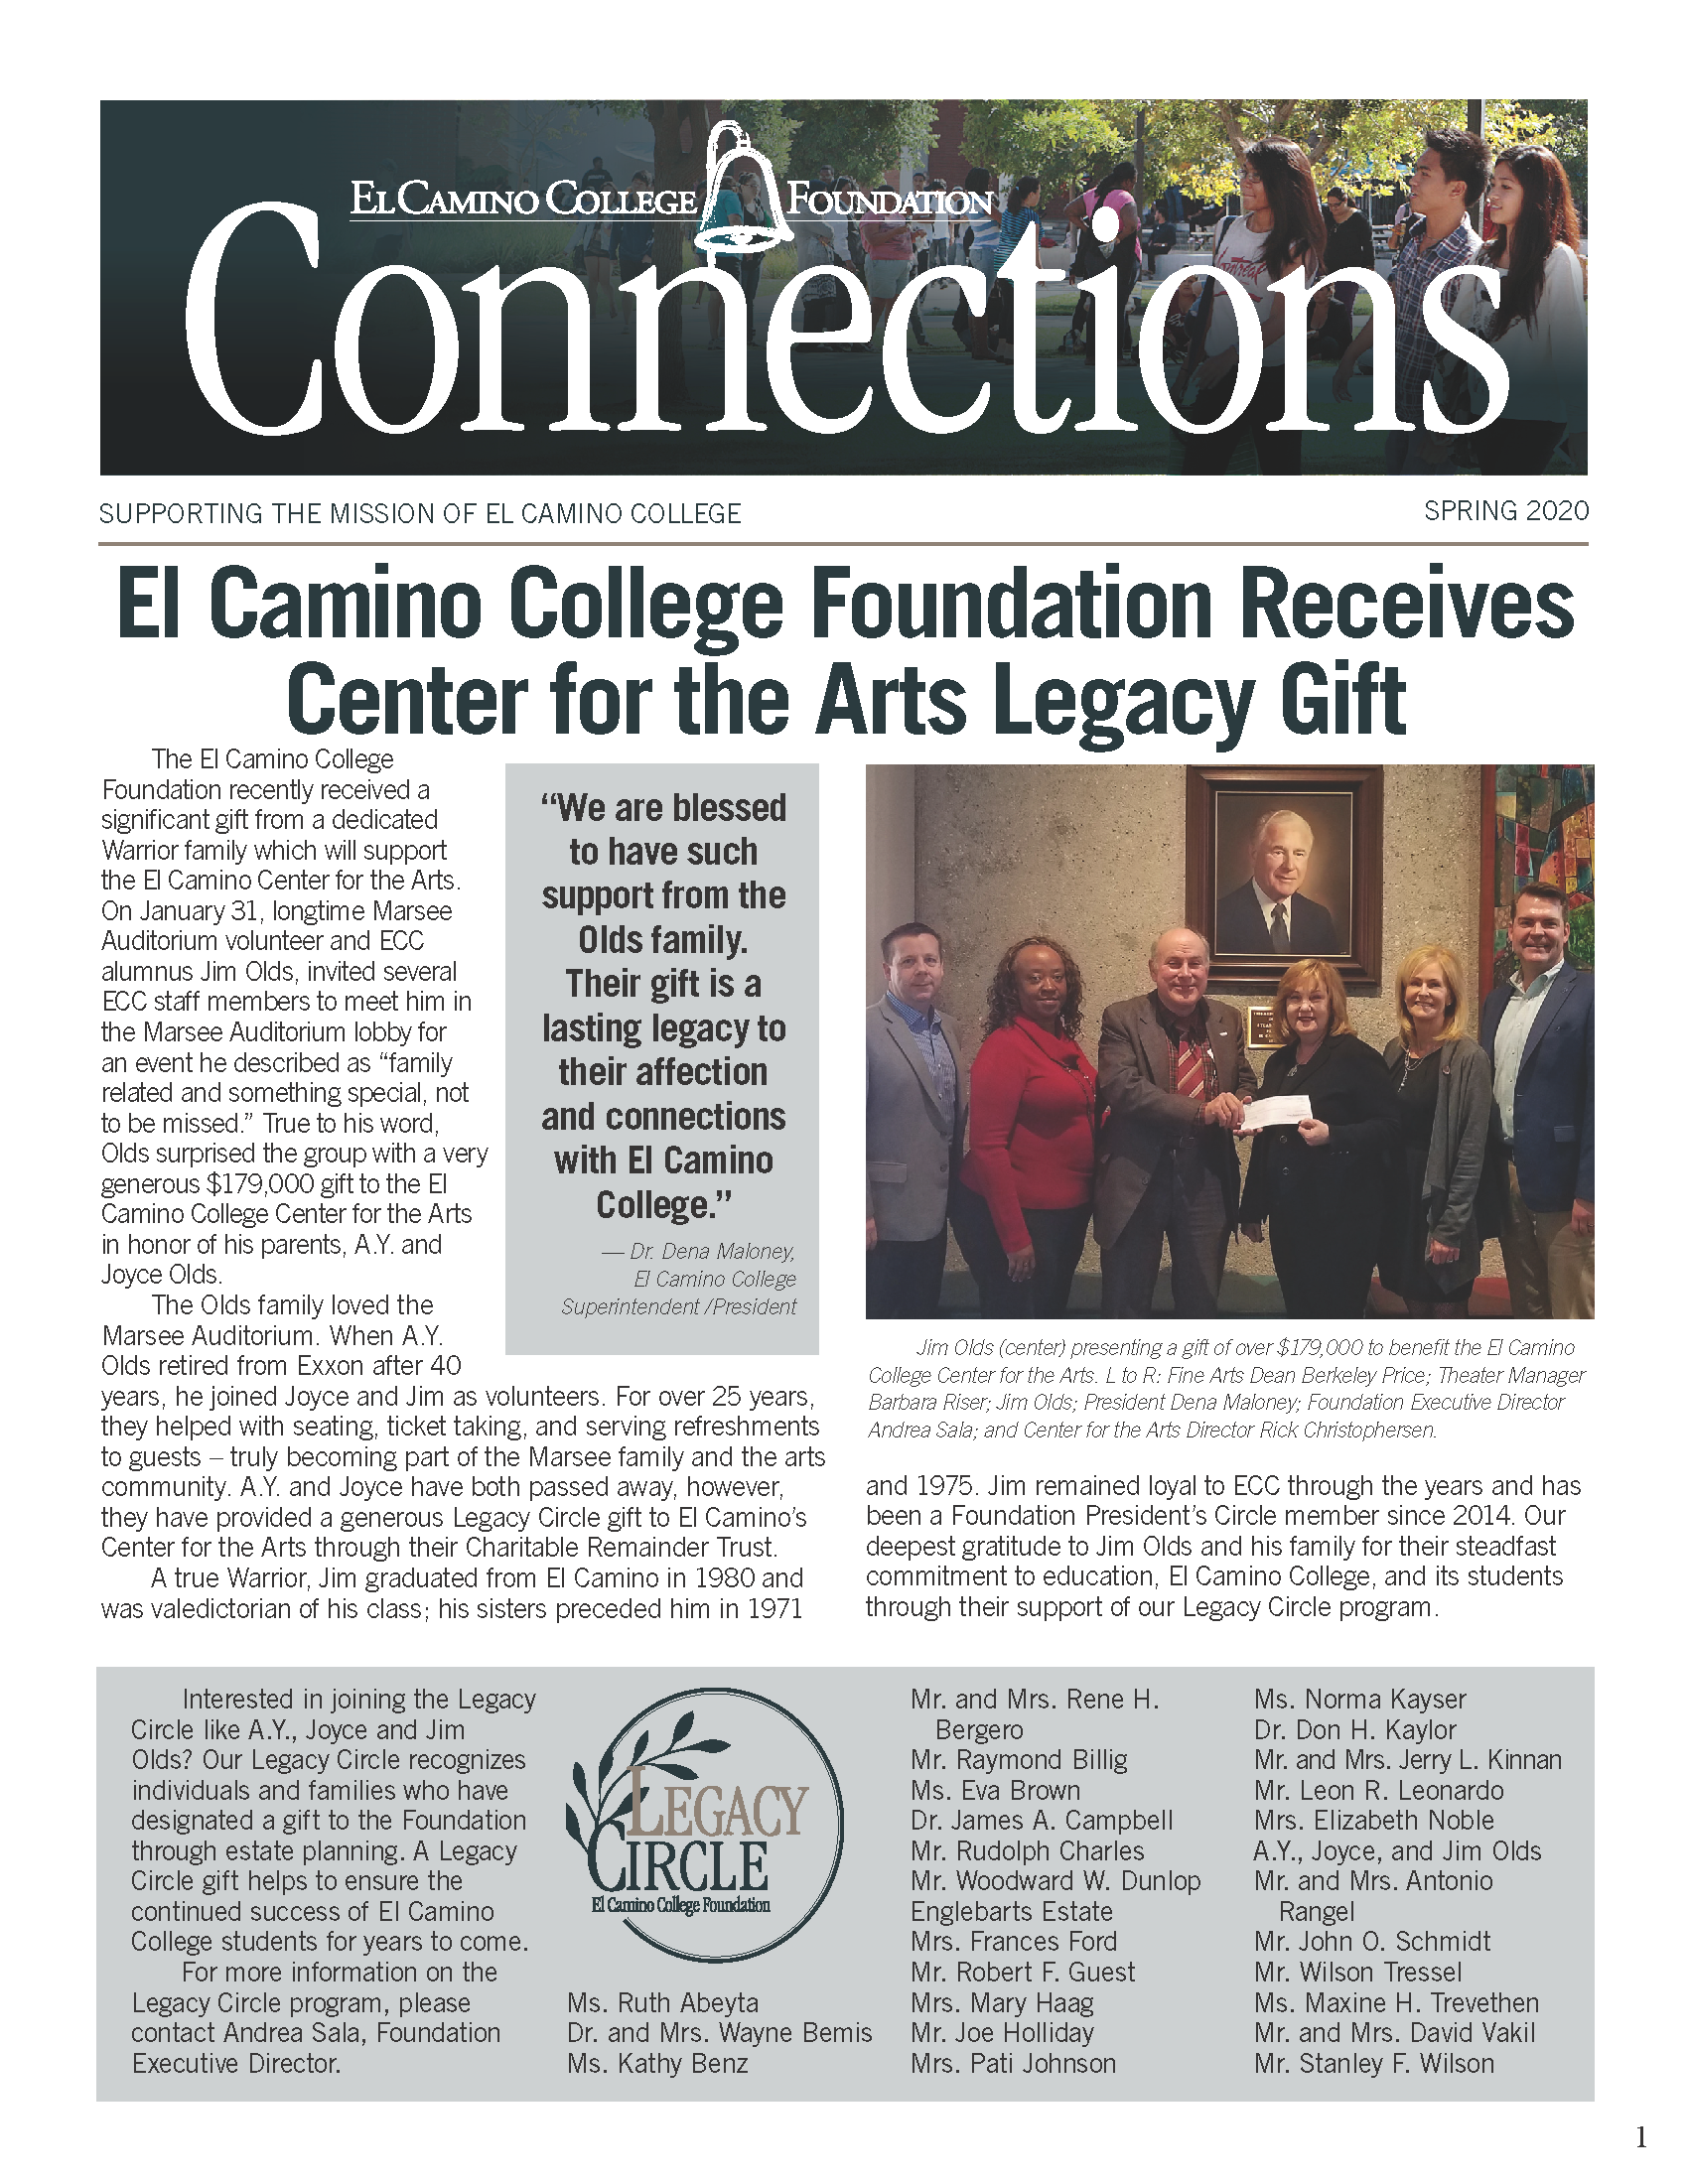 Spring 2020 Connections Newsletter